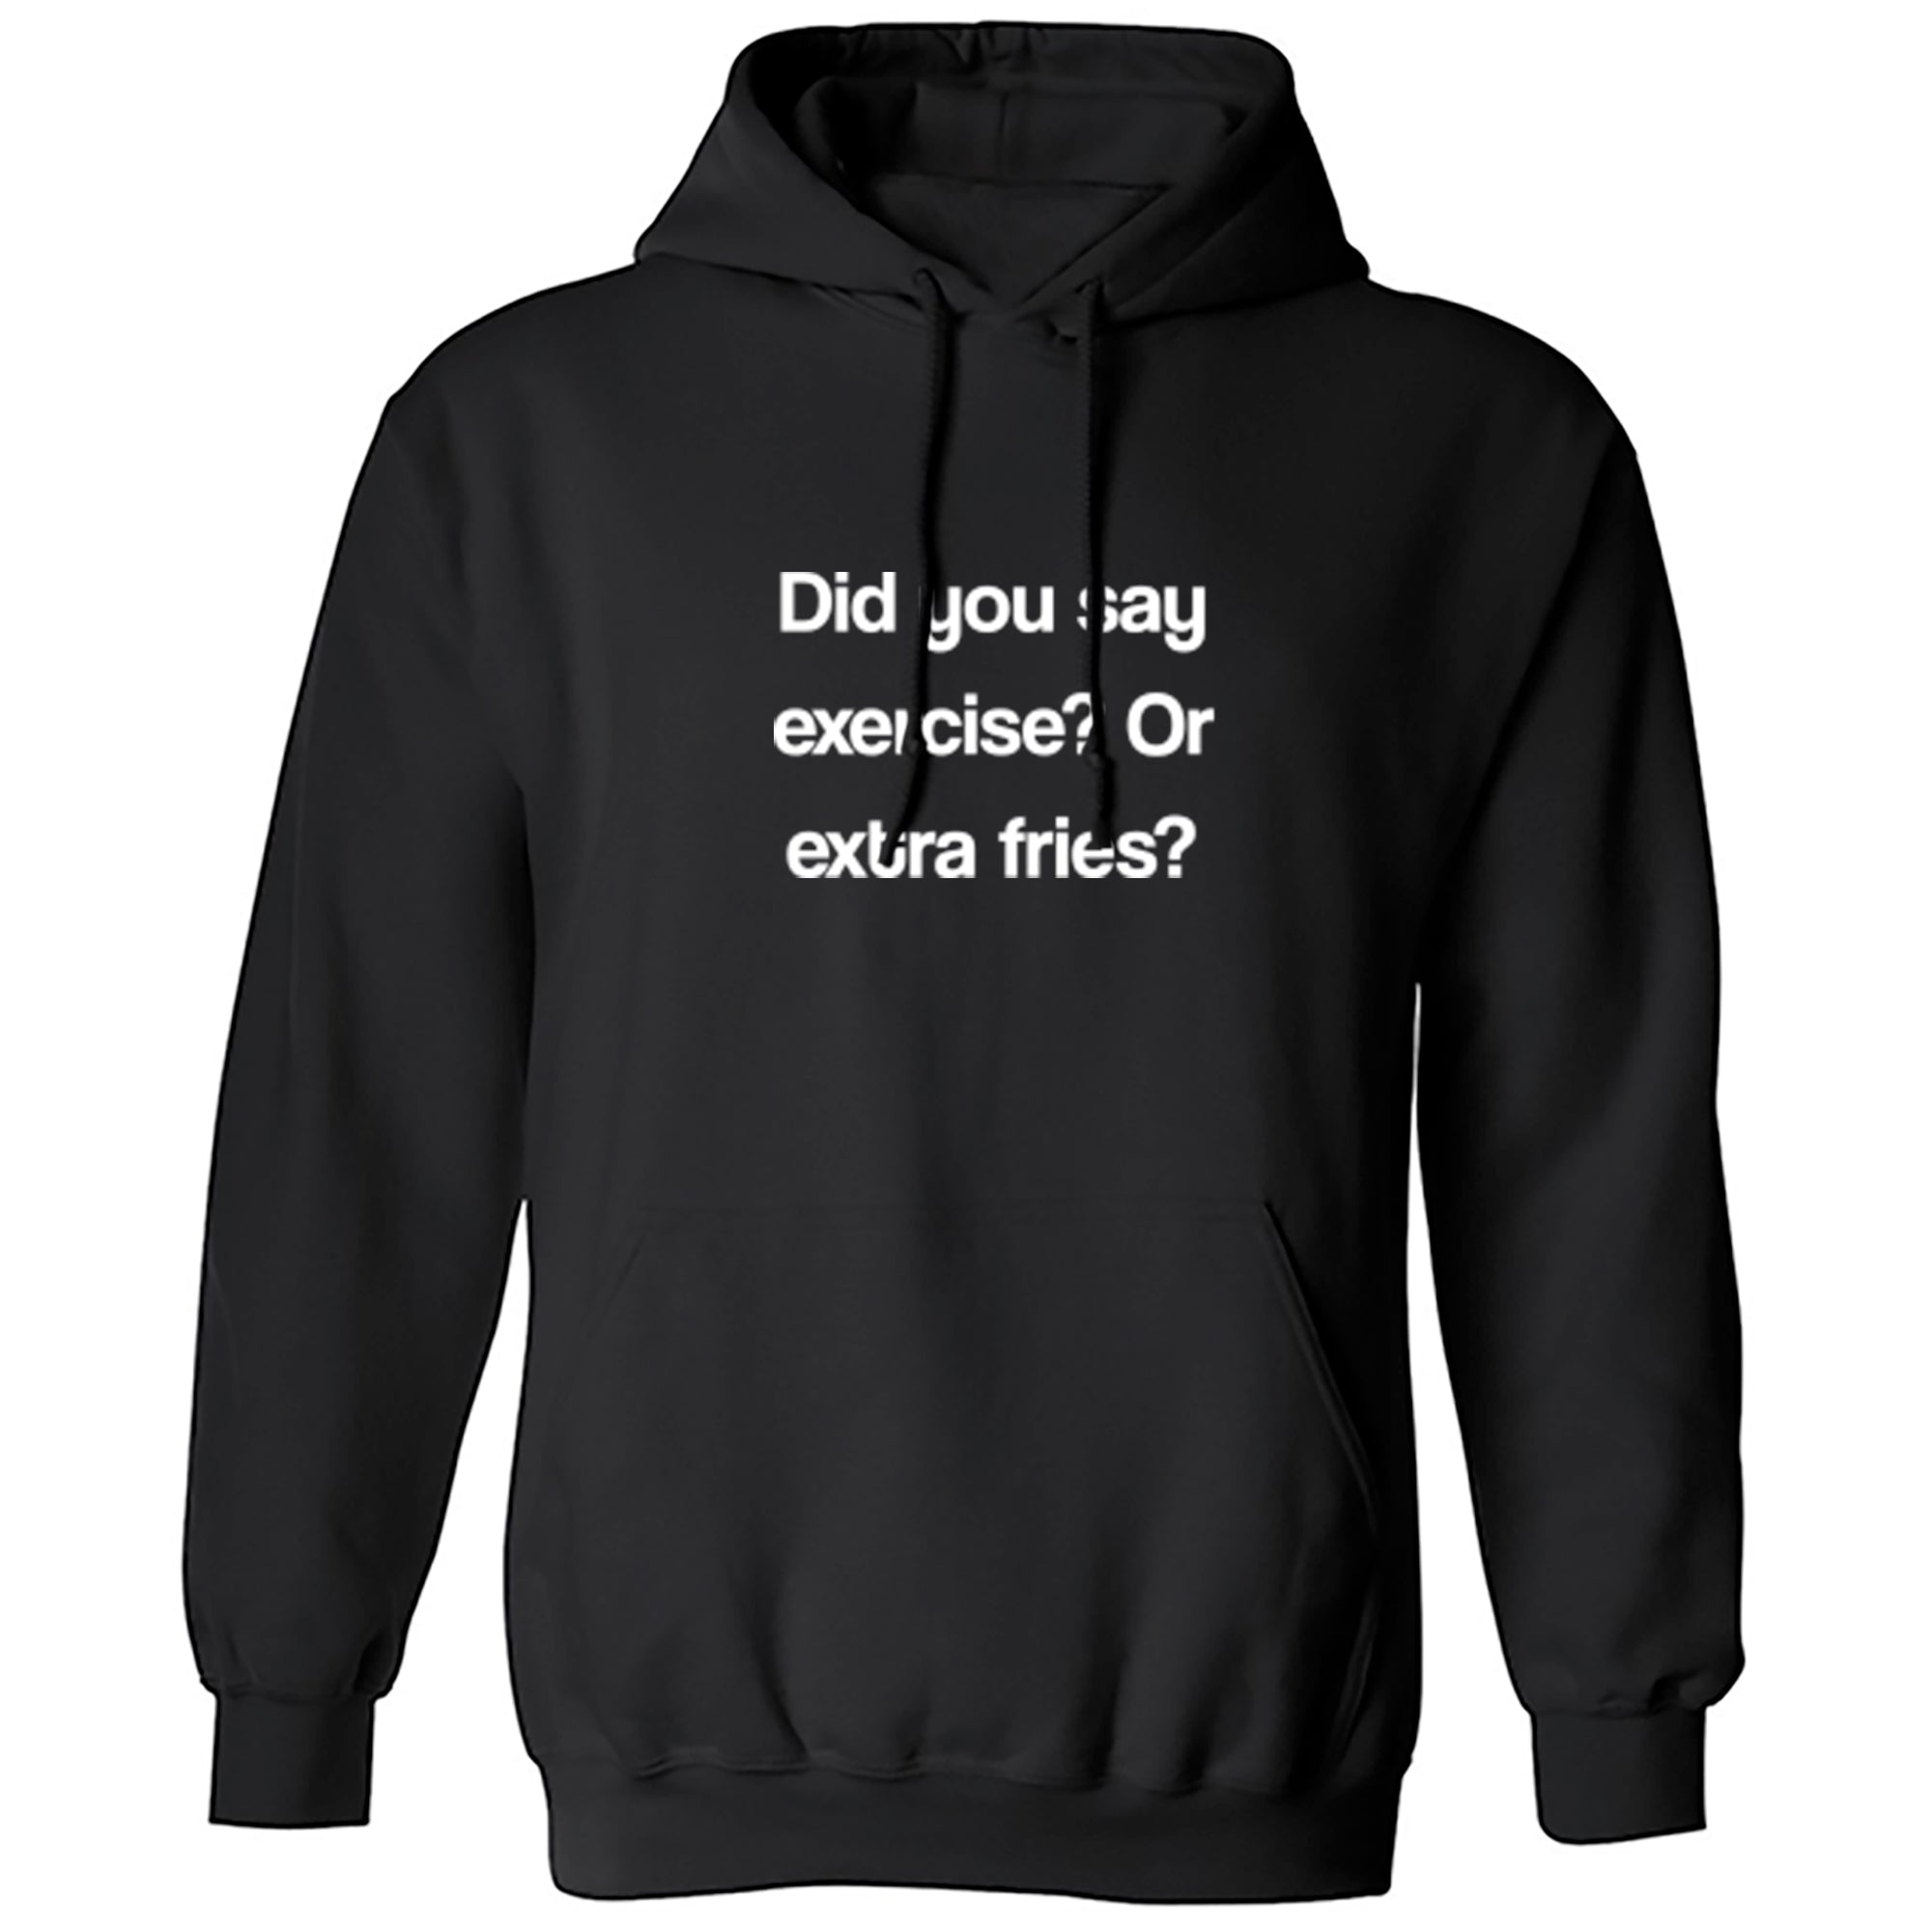 Did You Say Exercise? Or Extra Fries? Unisex Hoodie S1109 - Illustrated Identity Ltd.